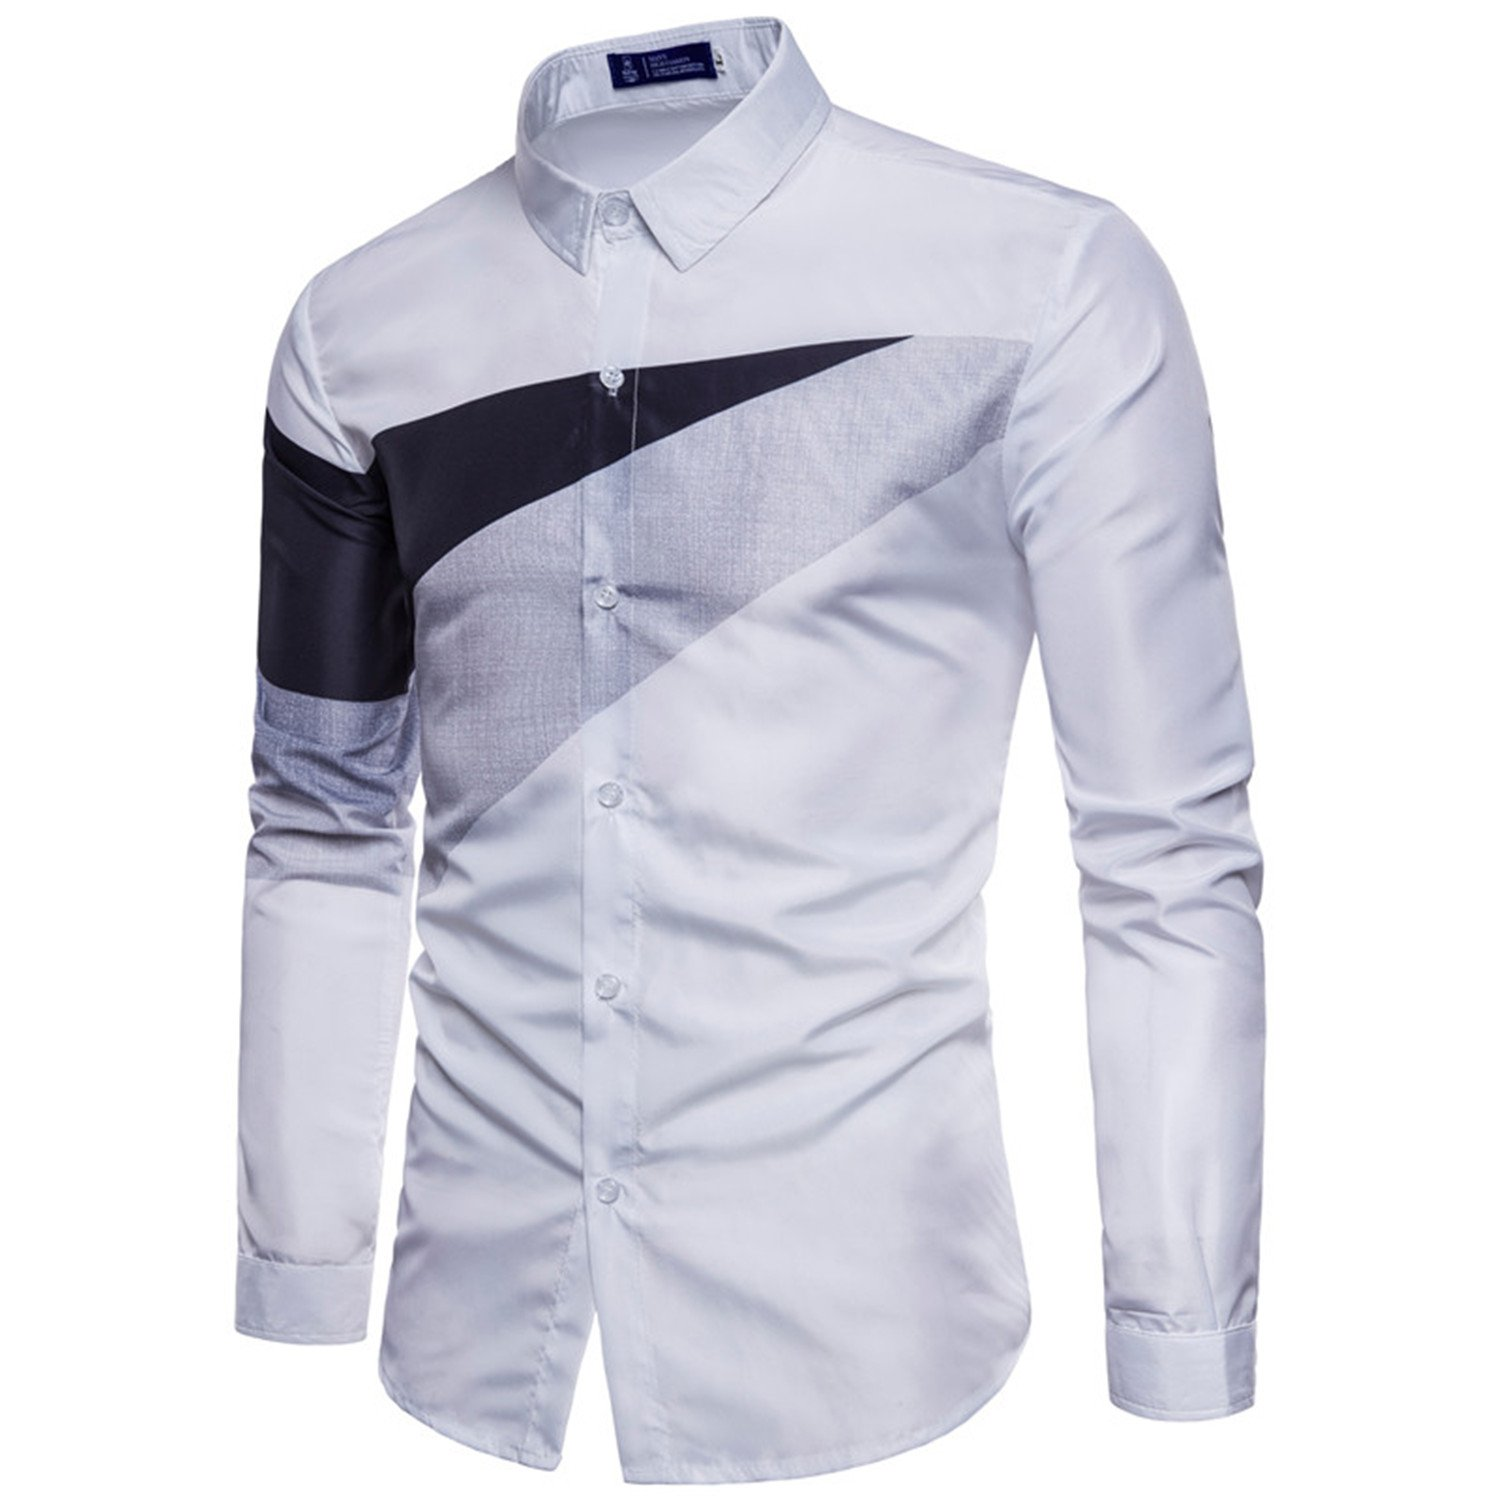 Engineeringed Mens Casual White Button Down Shirt 2018 Brand New Long Sleeve at Amazon Mens Clothing store: